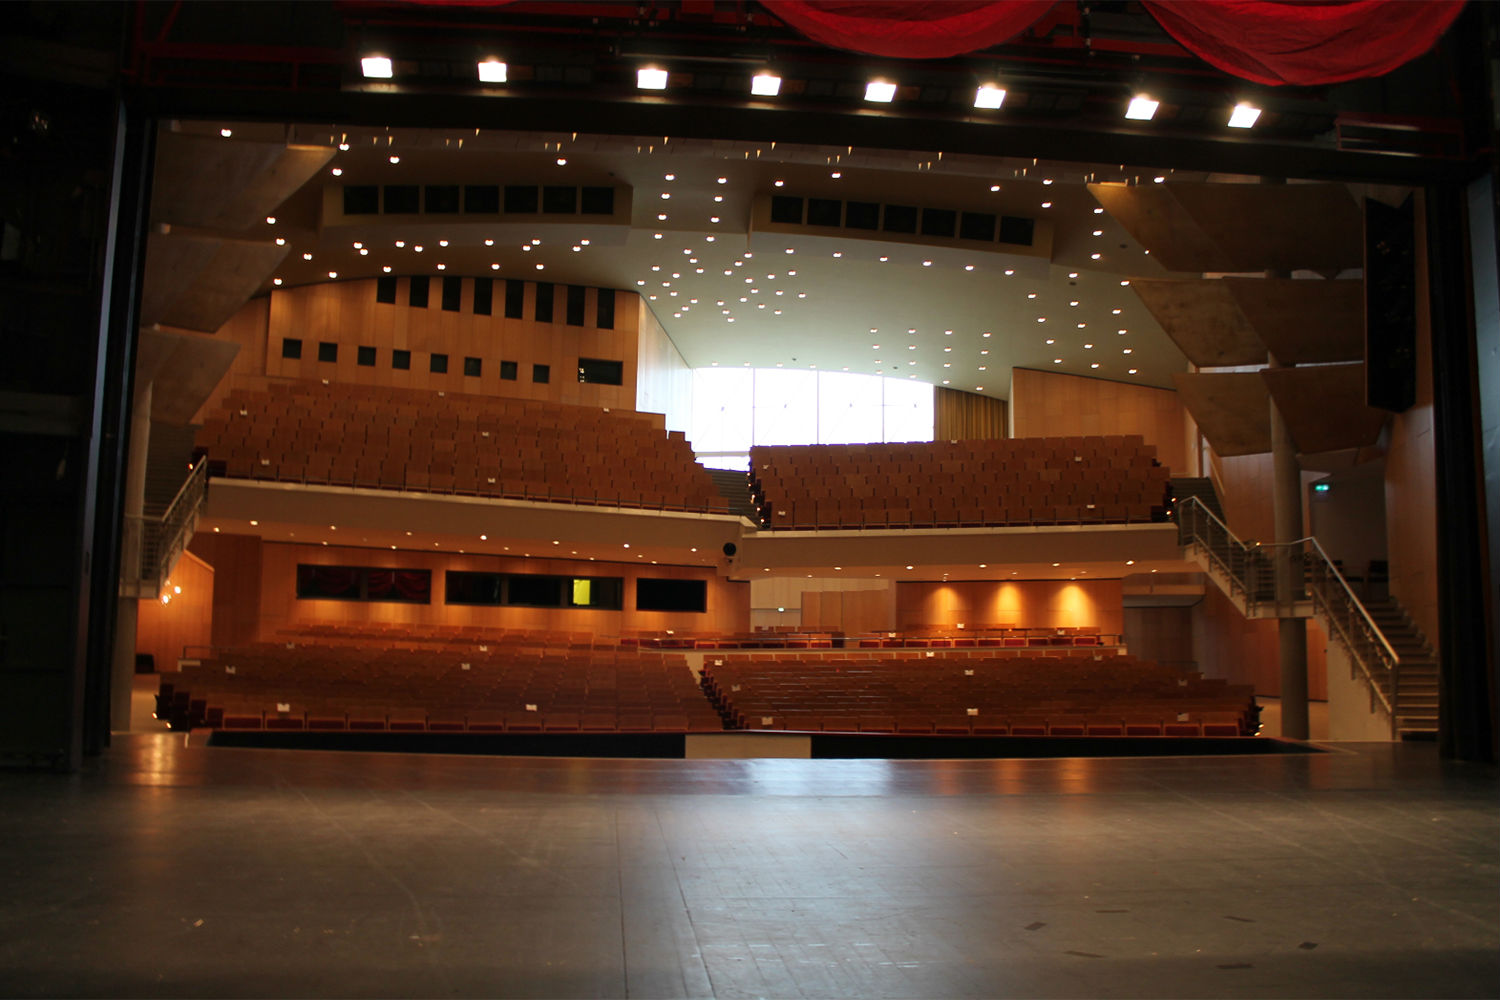 Scharoun-Theater in Wolfsburg, Germany. Electro-acoustics systems and media systems engineering provided by ADA-AMC, a WSDG Company. Theater stage view